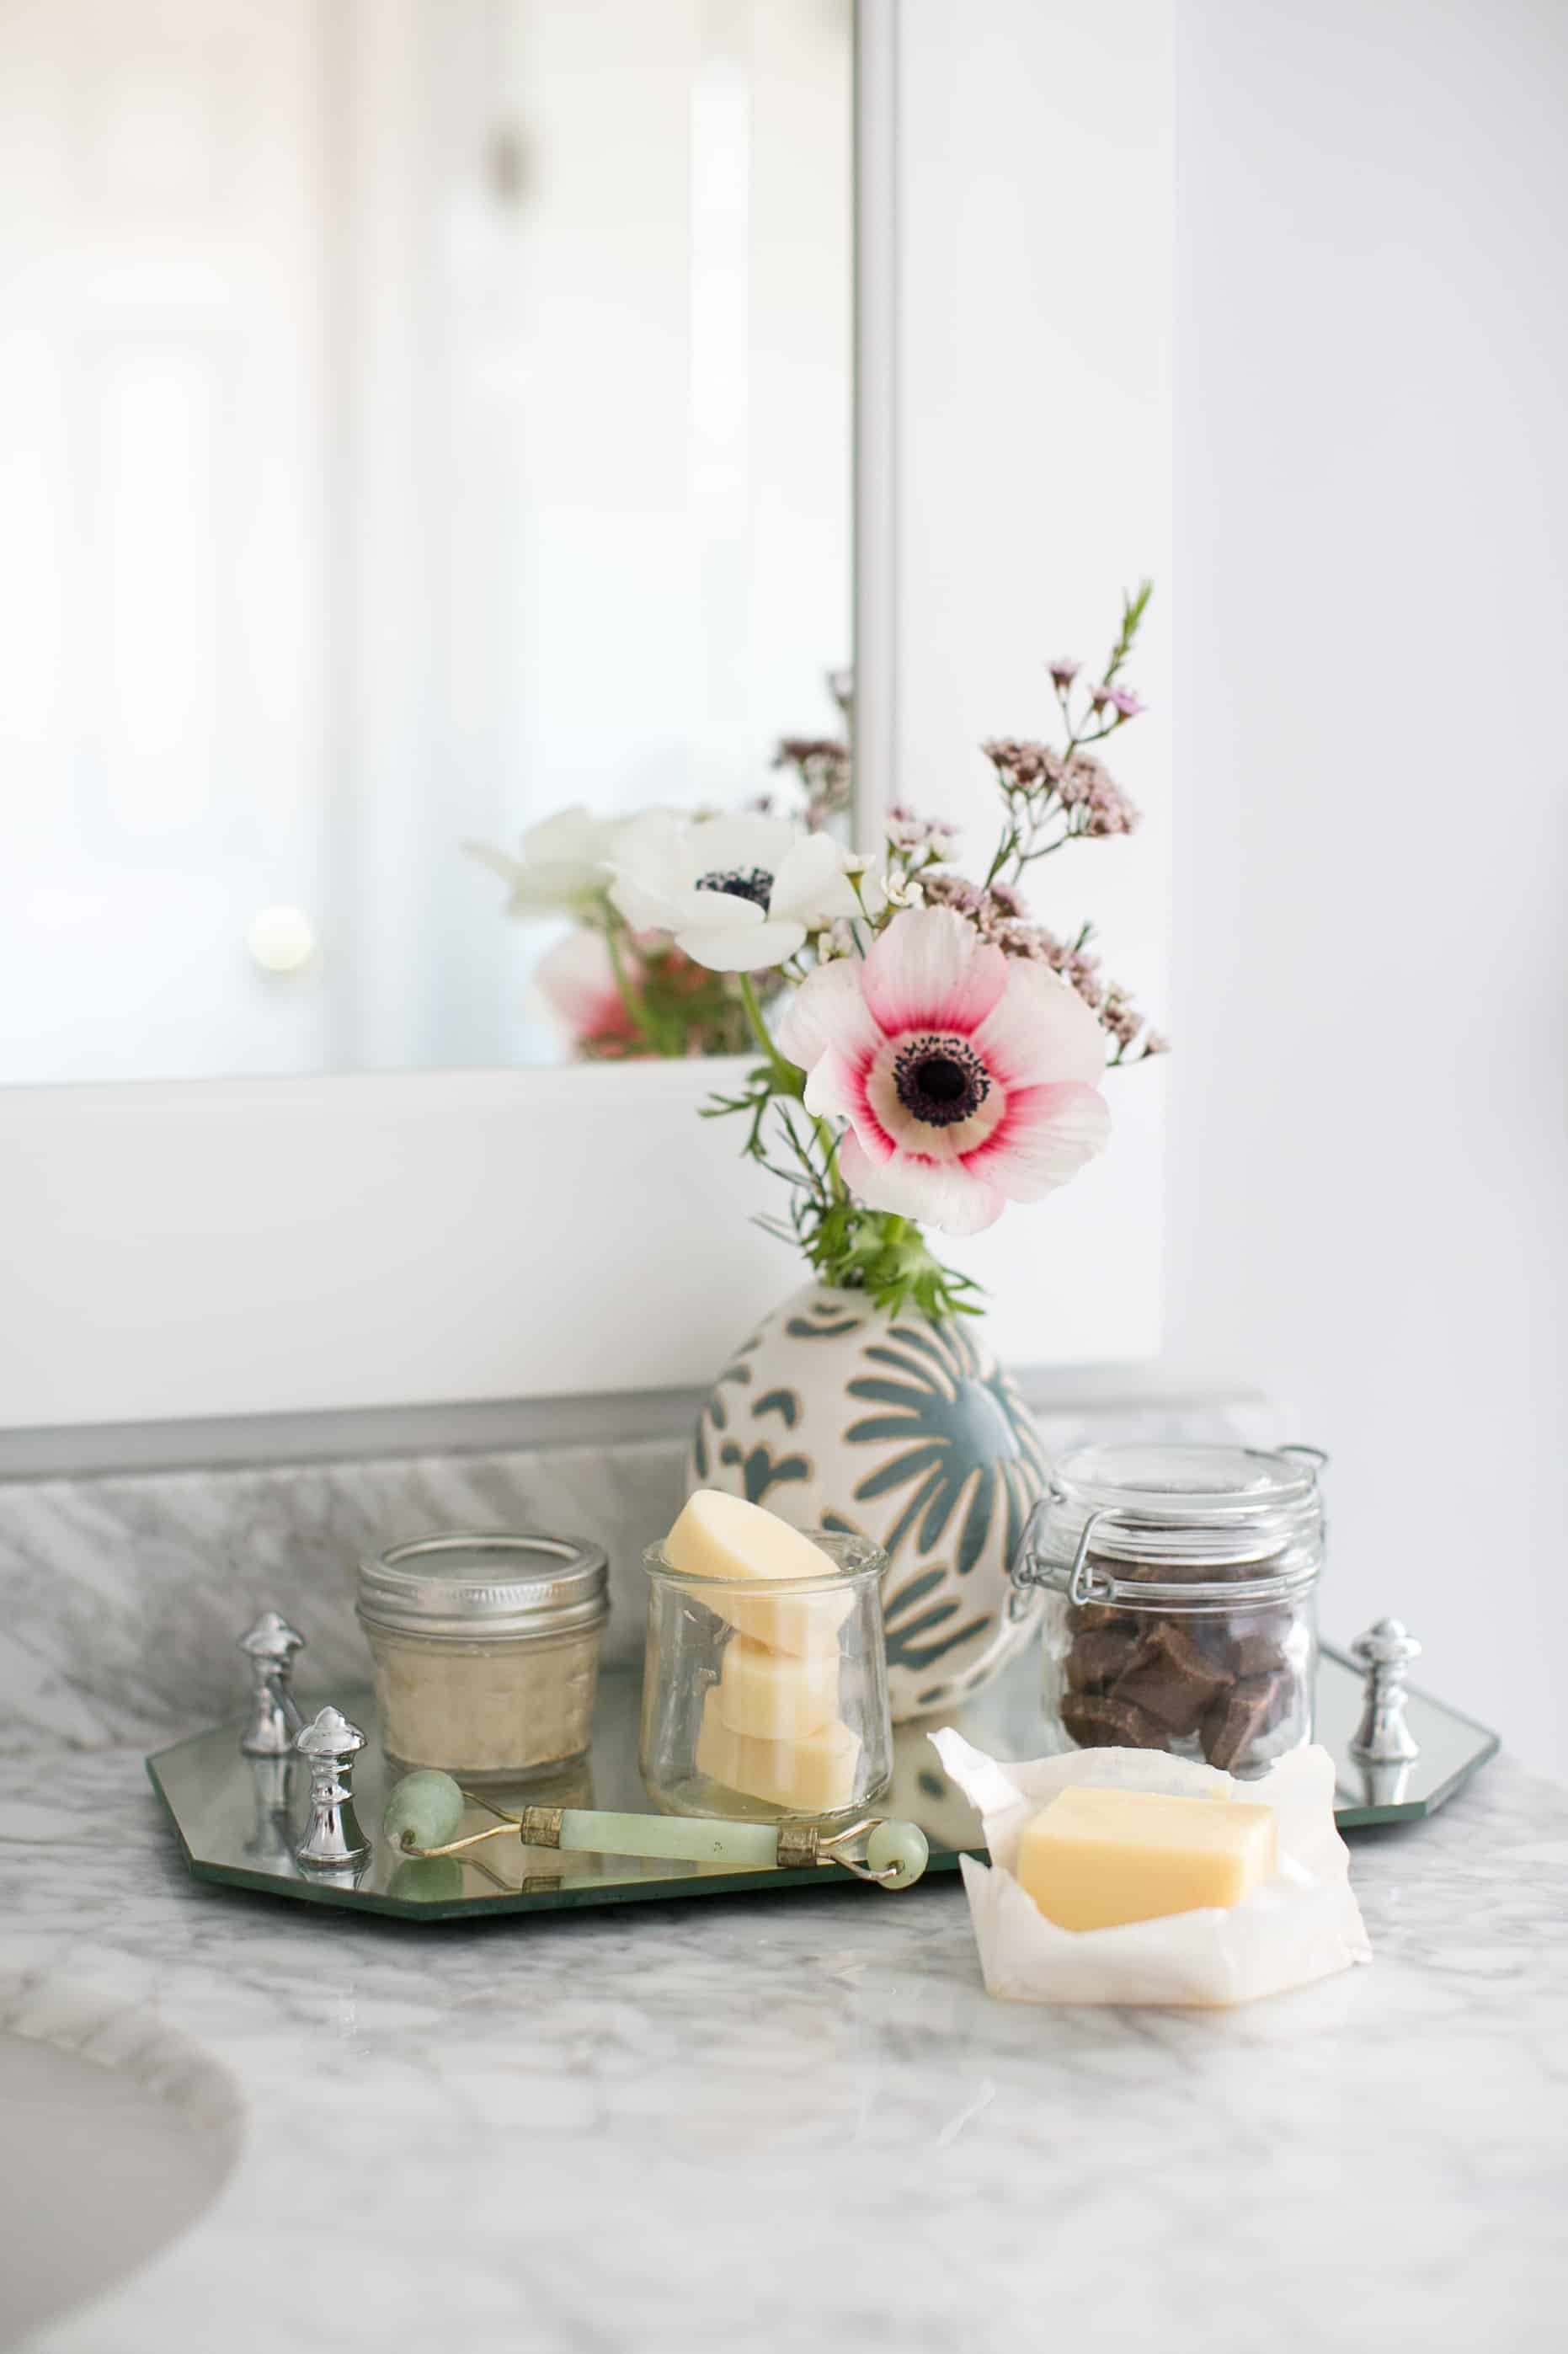 4 Simple Steps to a Zero-Waste Beauty Routine